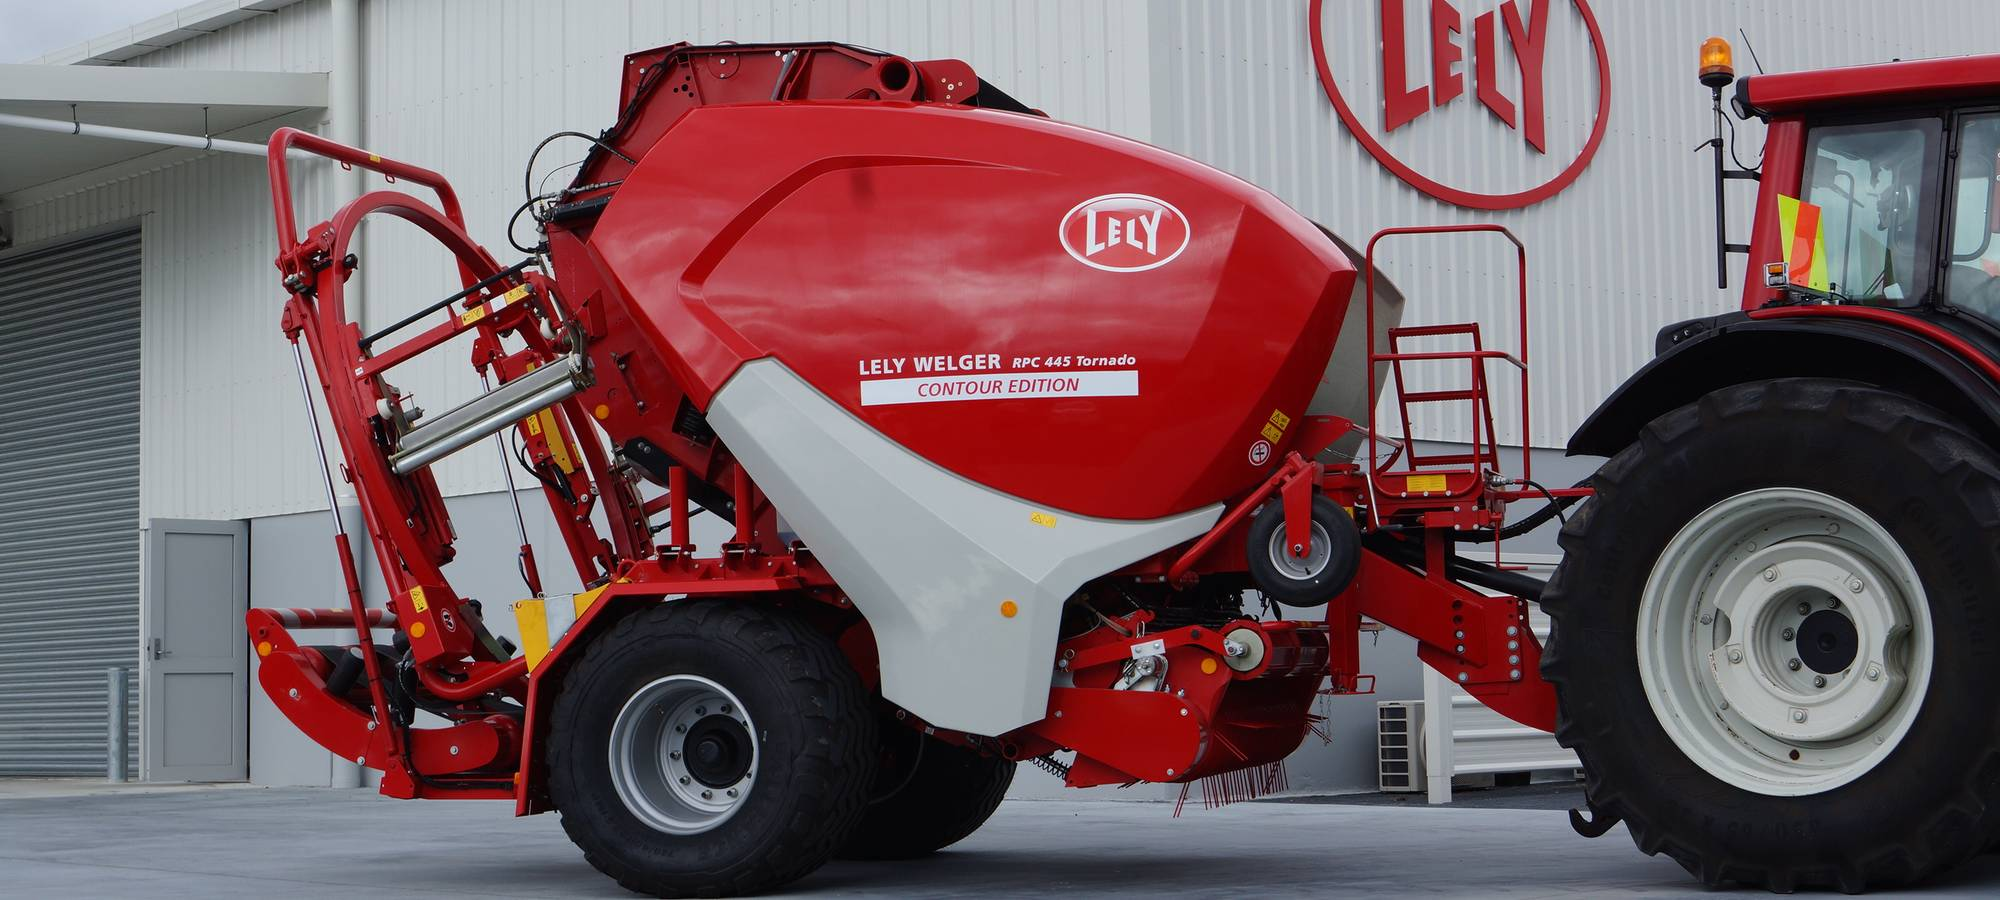 Lely's newest variable chamber round baler stands out from the crowd